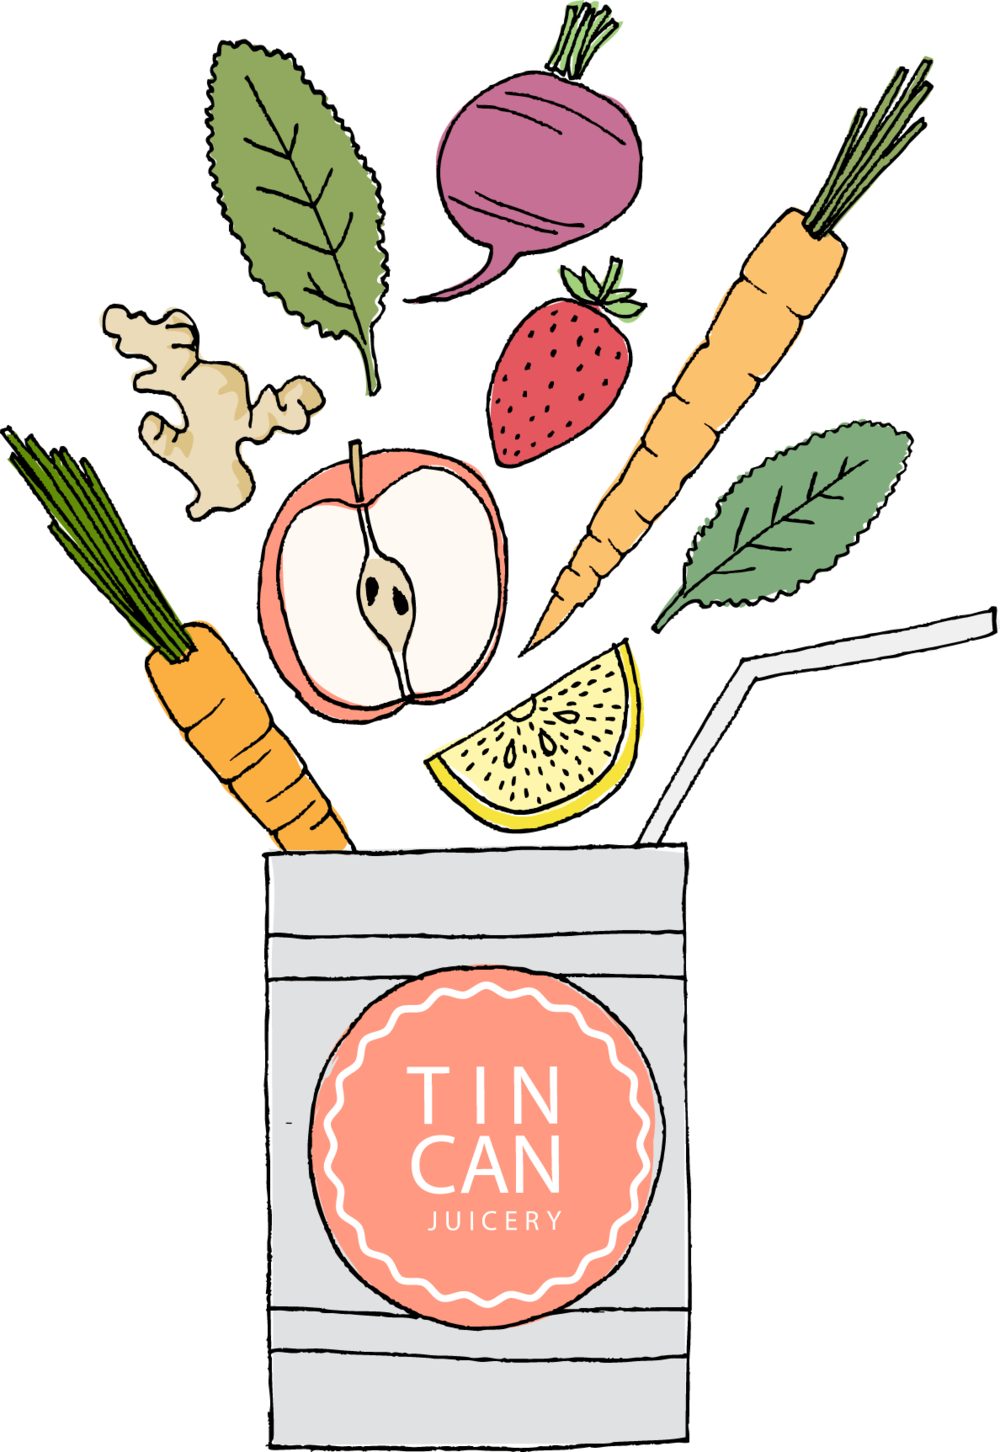 Visit Tin Can at our location in Hudson, NY - 449 Warren Street Tuesday - Friday 7 am to 3 pmSaturday and Sunday 9 am to 2 pmclosed Monday